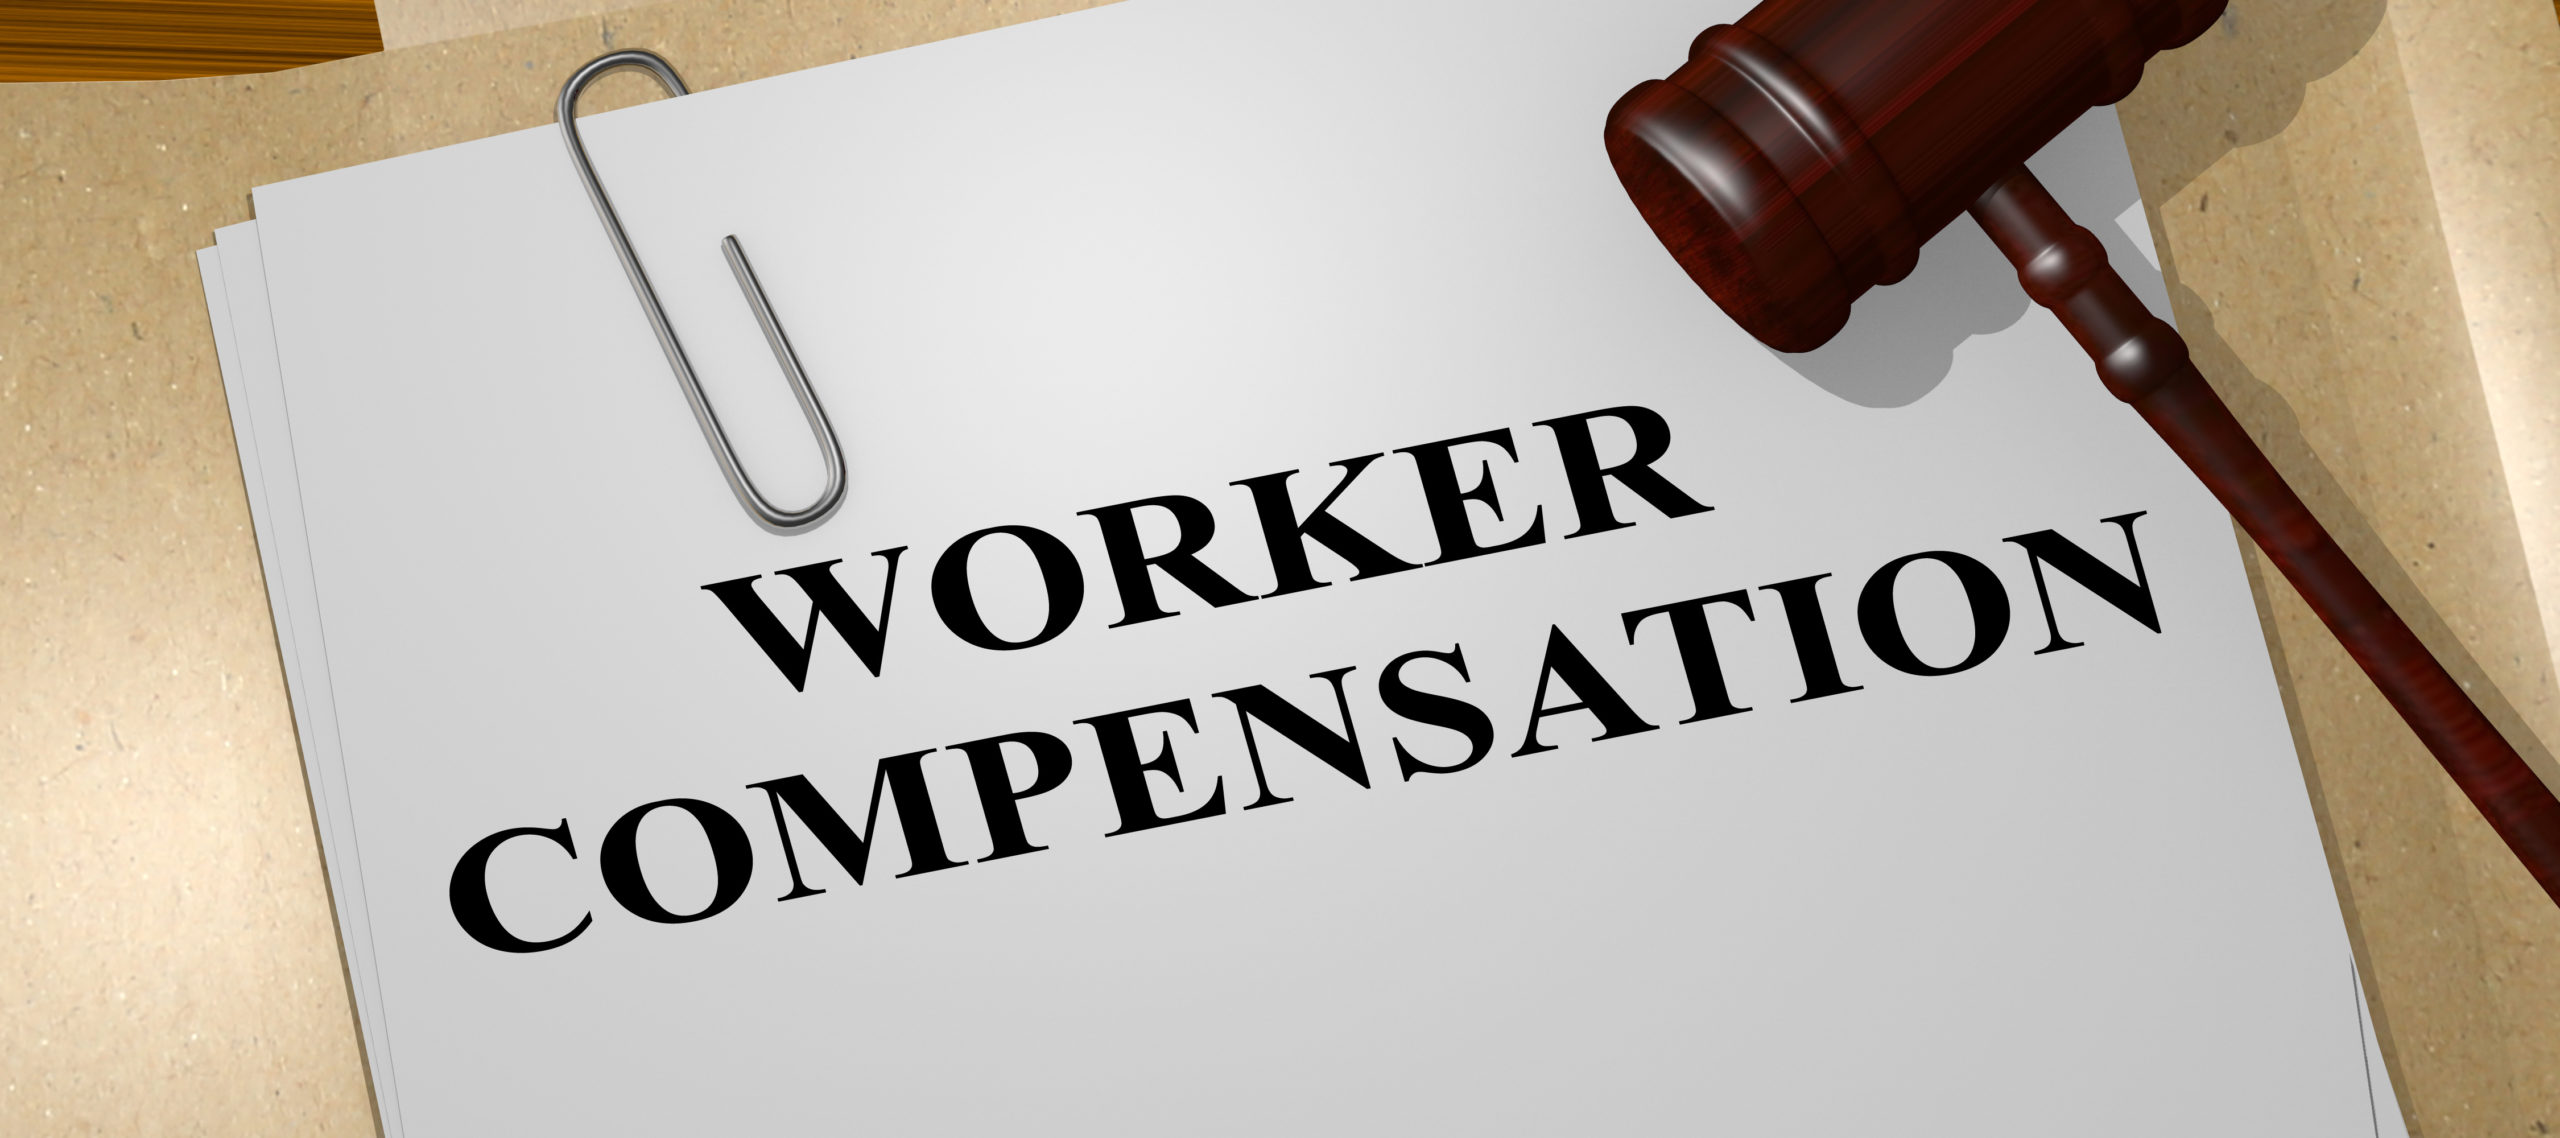 Occupational Accident Insurance and Workers Compensation